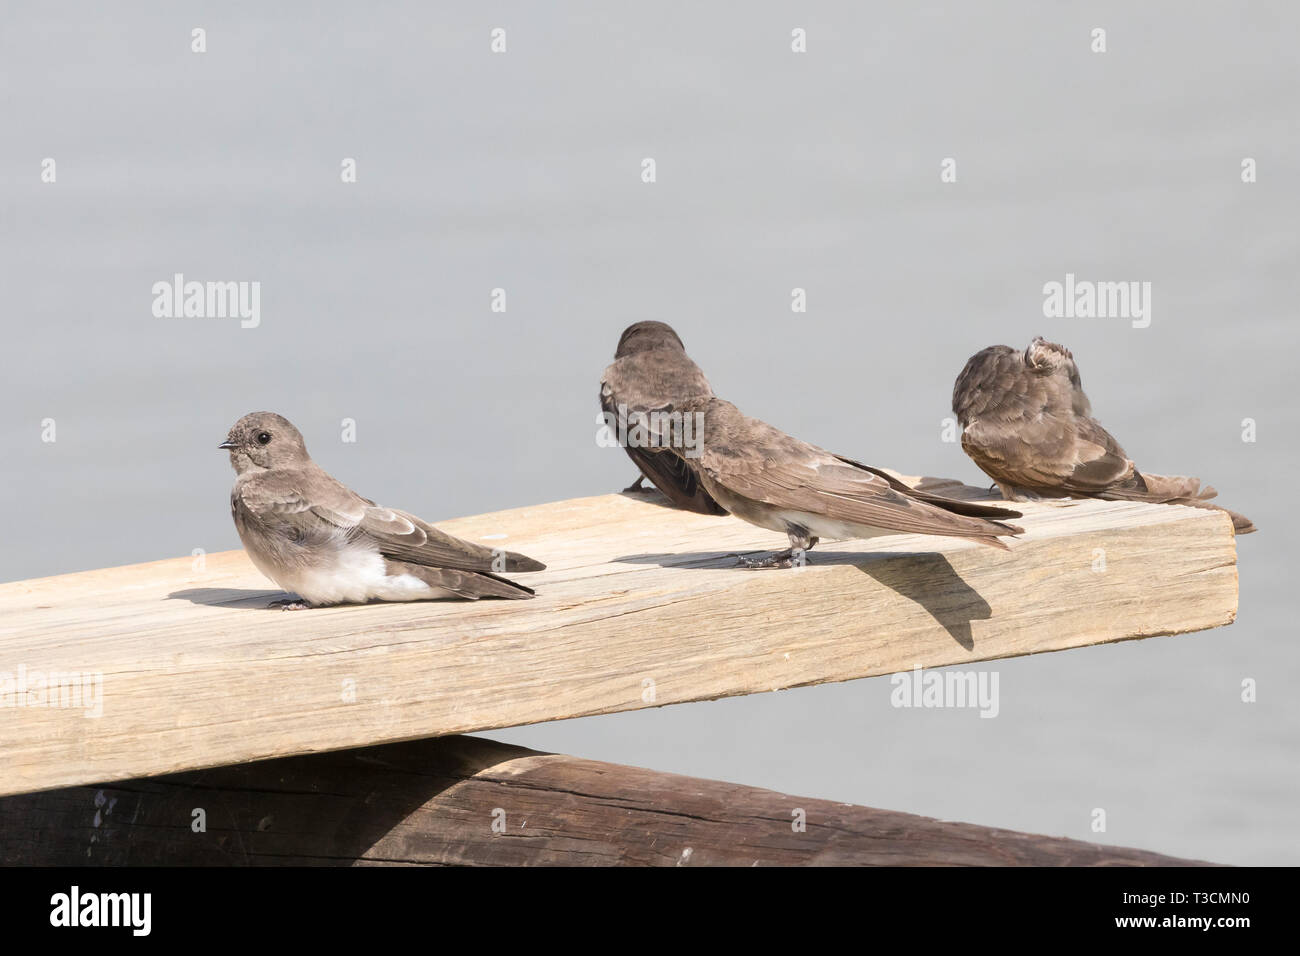 Brown-throated Martin (Riparia paludicola) group perched on a wooden jetty at a rual dam in farmland, Western Cape, South Africa - Stock Image